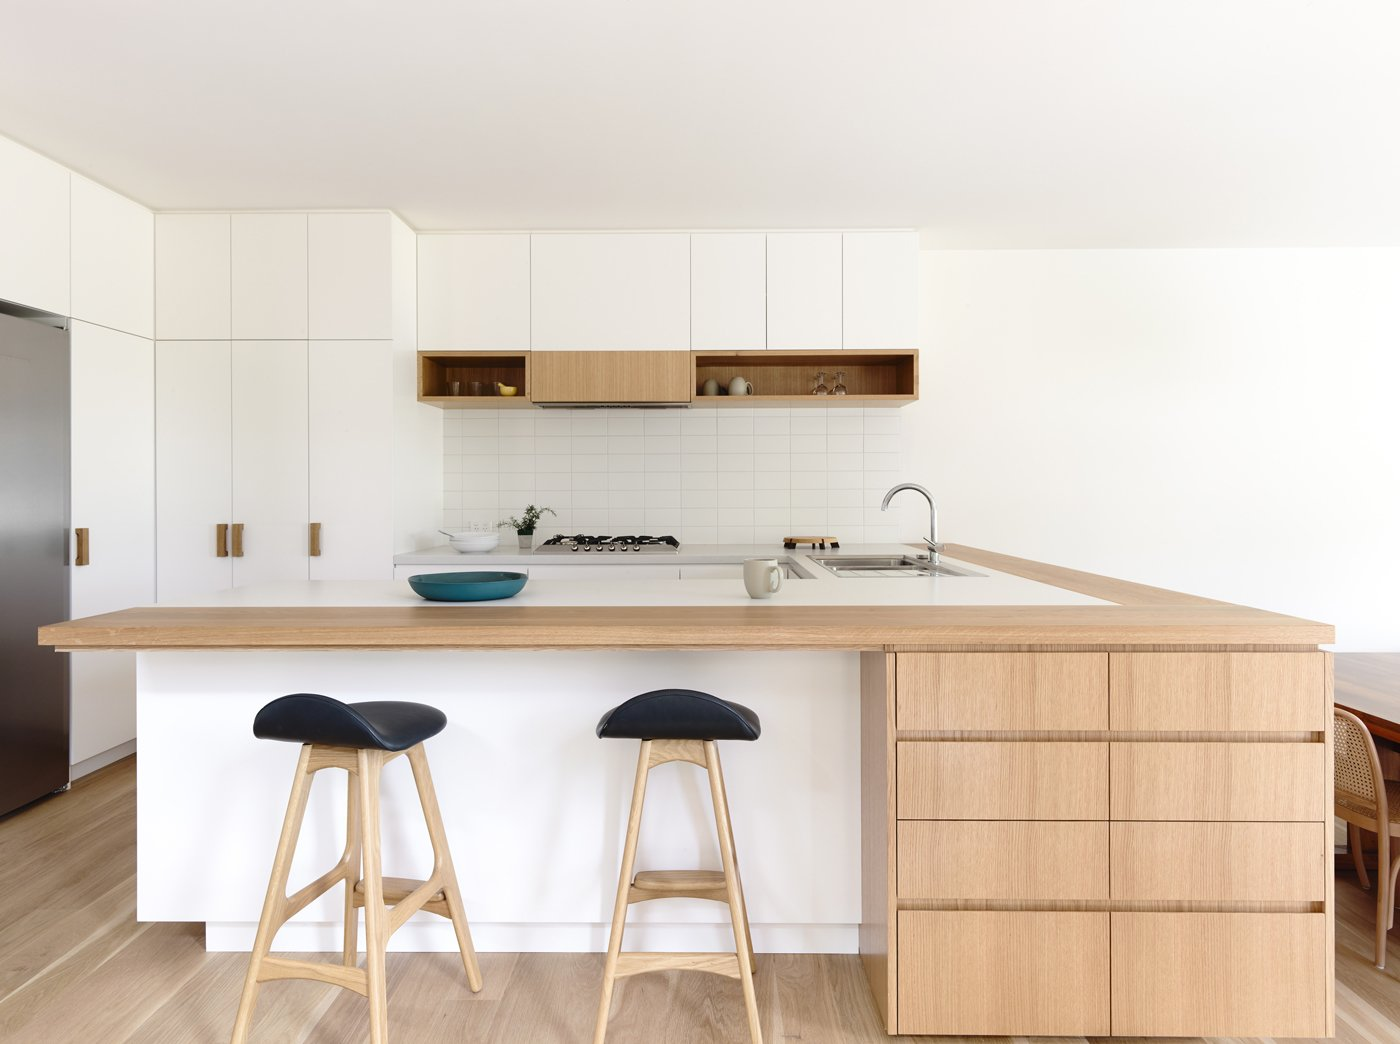 In the kitchen, black-cushioned bar stools by Erik Buch pop against the blonde wood counters, custom white melamine cupboards, and milky ceramic tile backsplash. The kitchen sink is by Franke, the faucet by Grohe, and the fridge by Liebherr.  Kitchen from Lush Hill